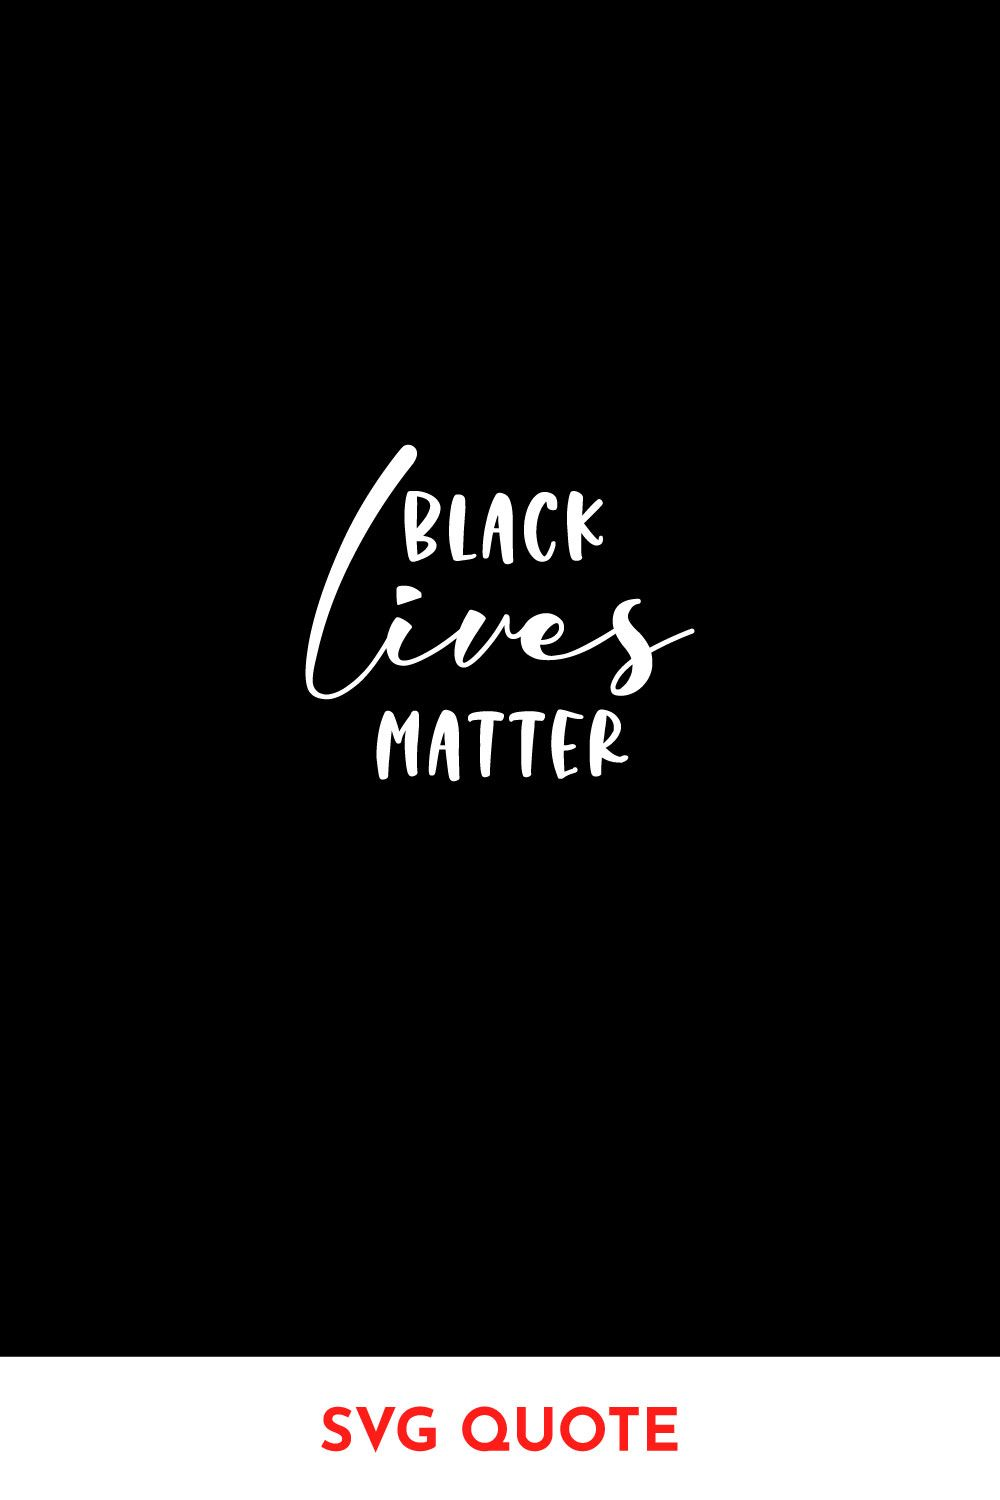 Download Black Lives Matter Calligraphy Quote Svg Png Black Lives Matter Quotes Black Lives Matter Svg Quotes